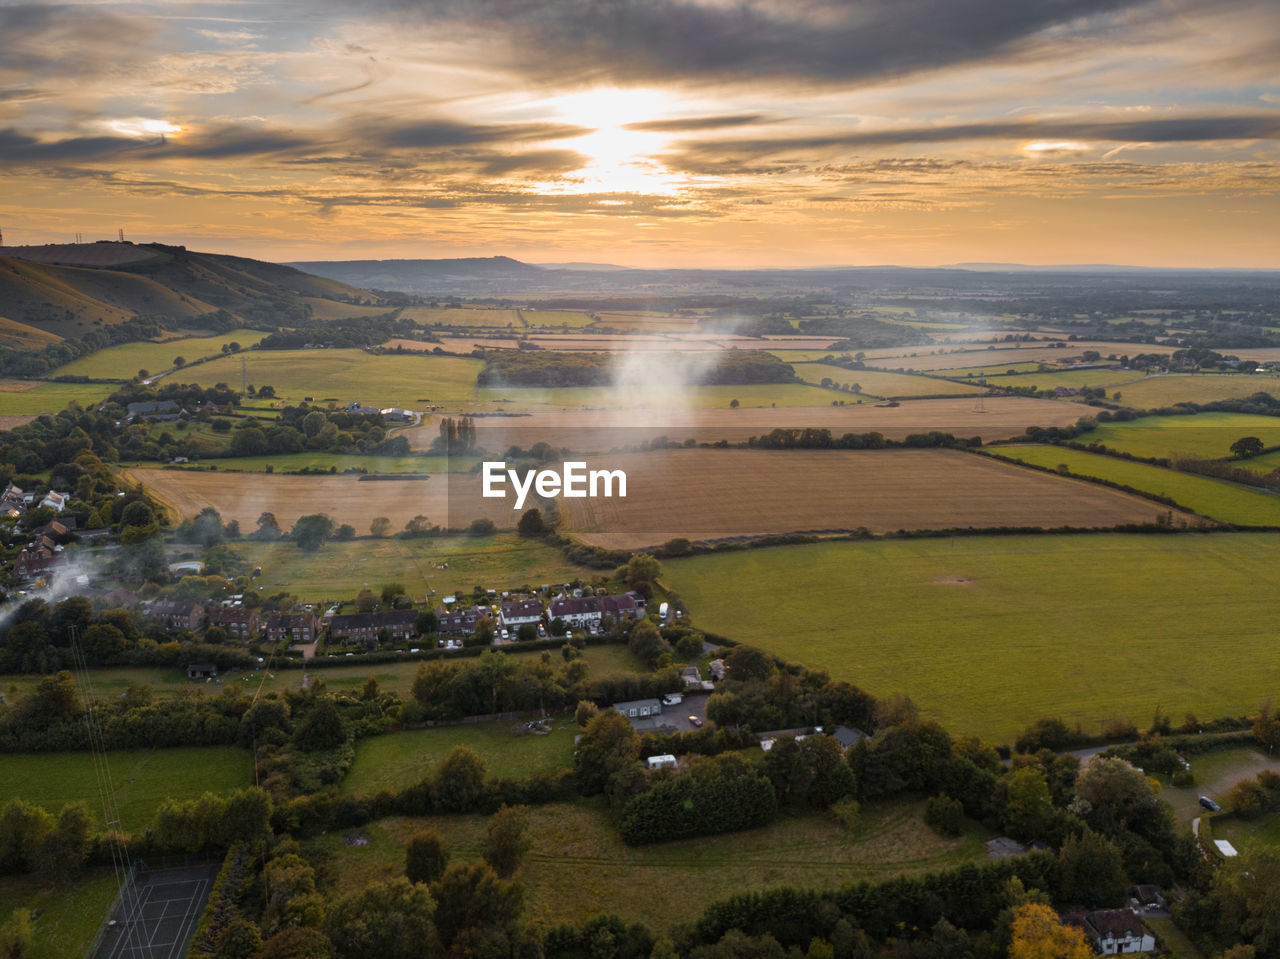 AERIAL VIEW OF AGRICULTURAL LANDSCAPE AGAINST SKY DURING SUNSET